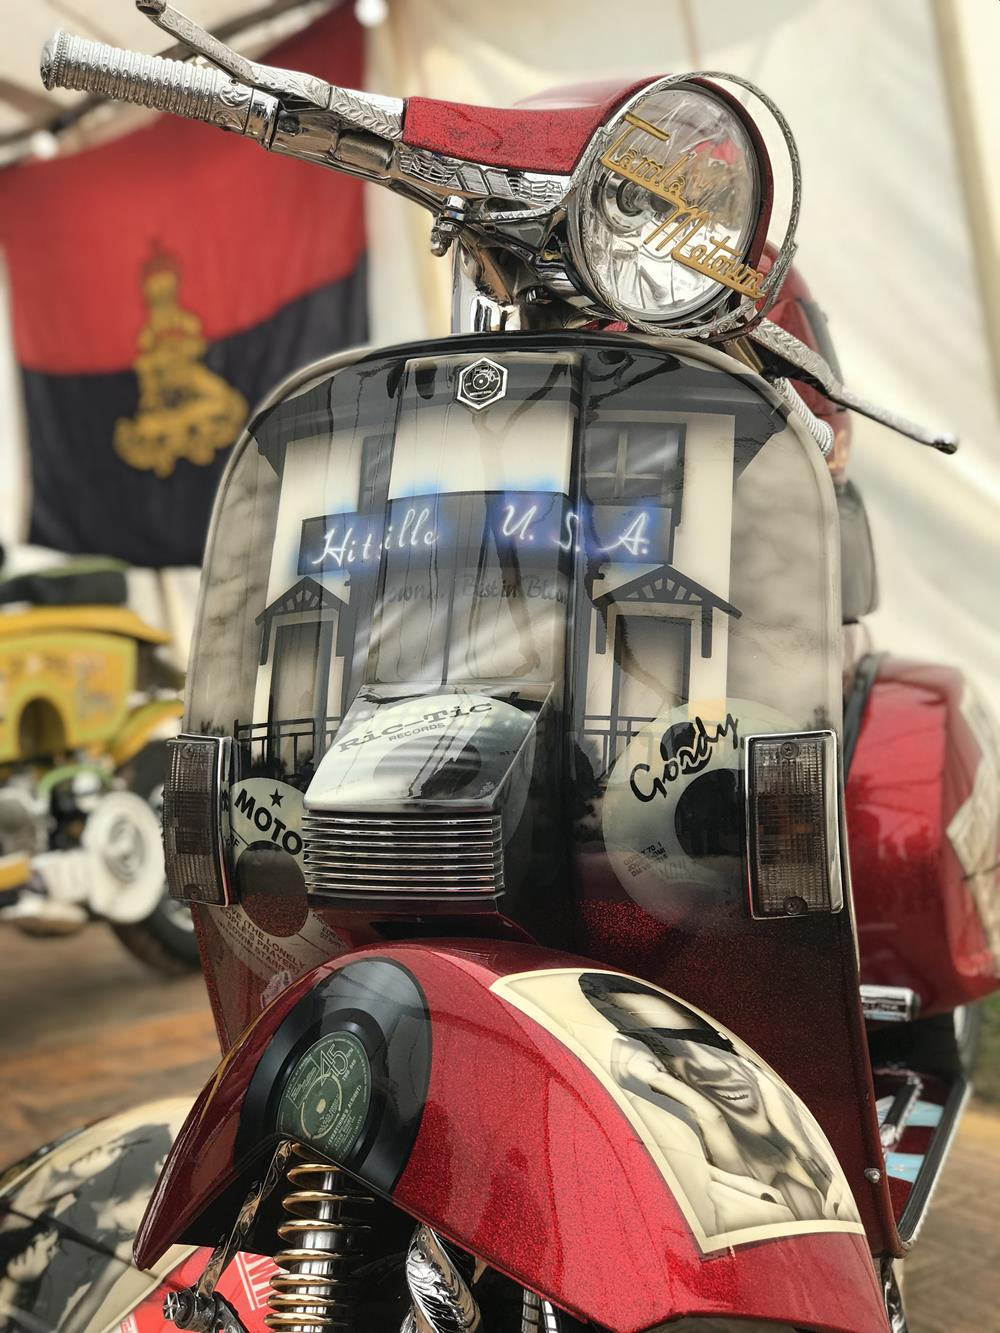 Front legshields on custom Vespa with murals of the front of the Motown building with Hitsville USA on a sign above the door